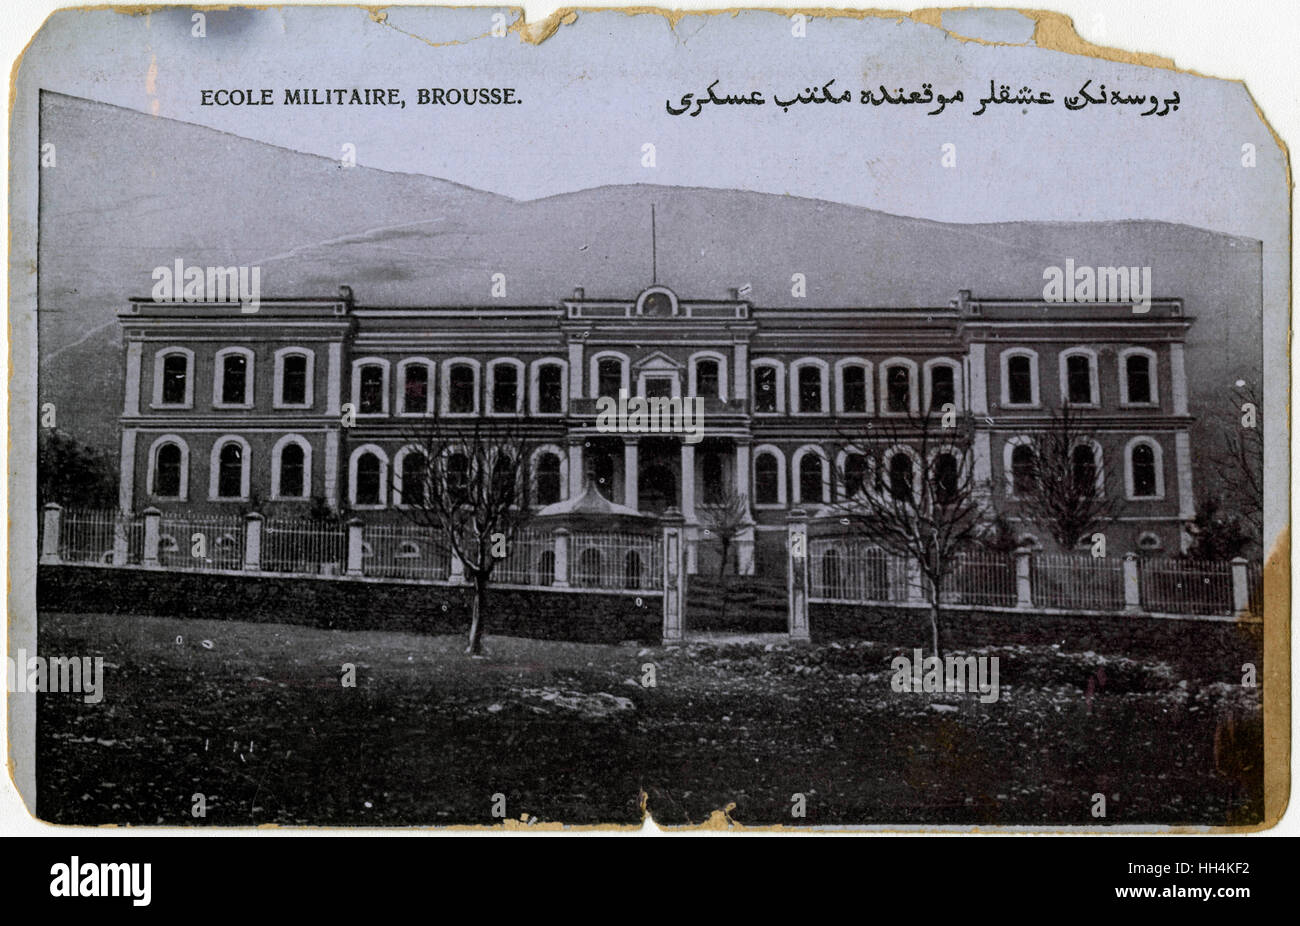 Bursa, Turkey - Ottoman Military School / Academy. . Fourth largest city and the first Ottoman Capital. Contains - Stock Image